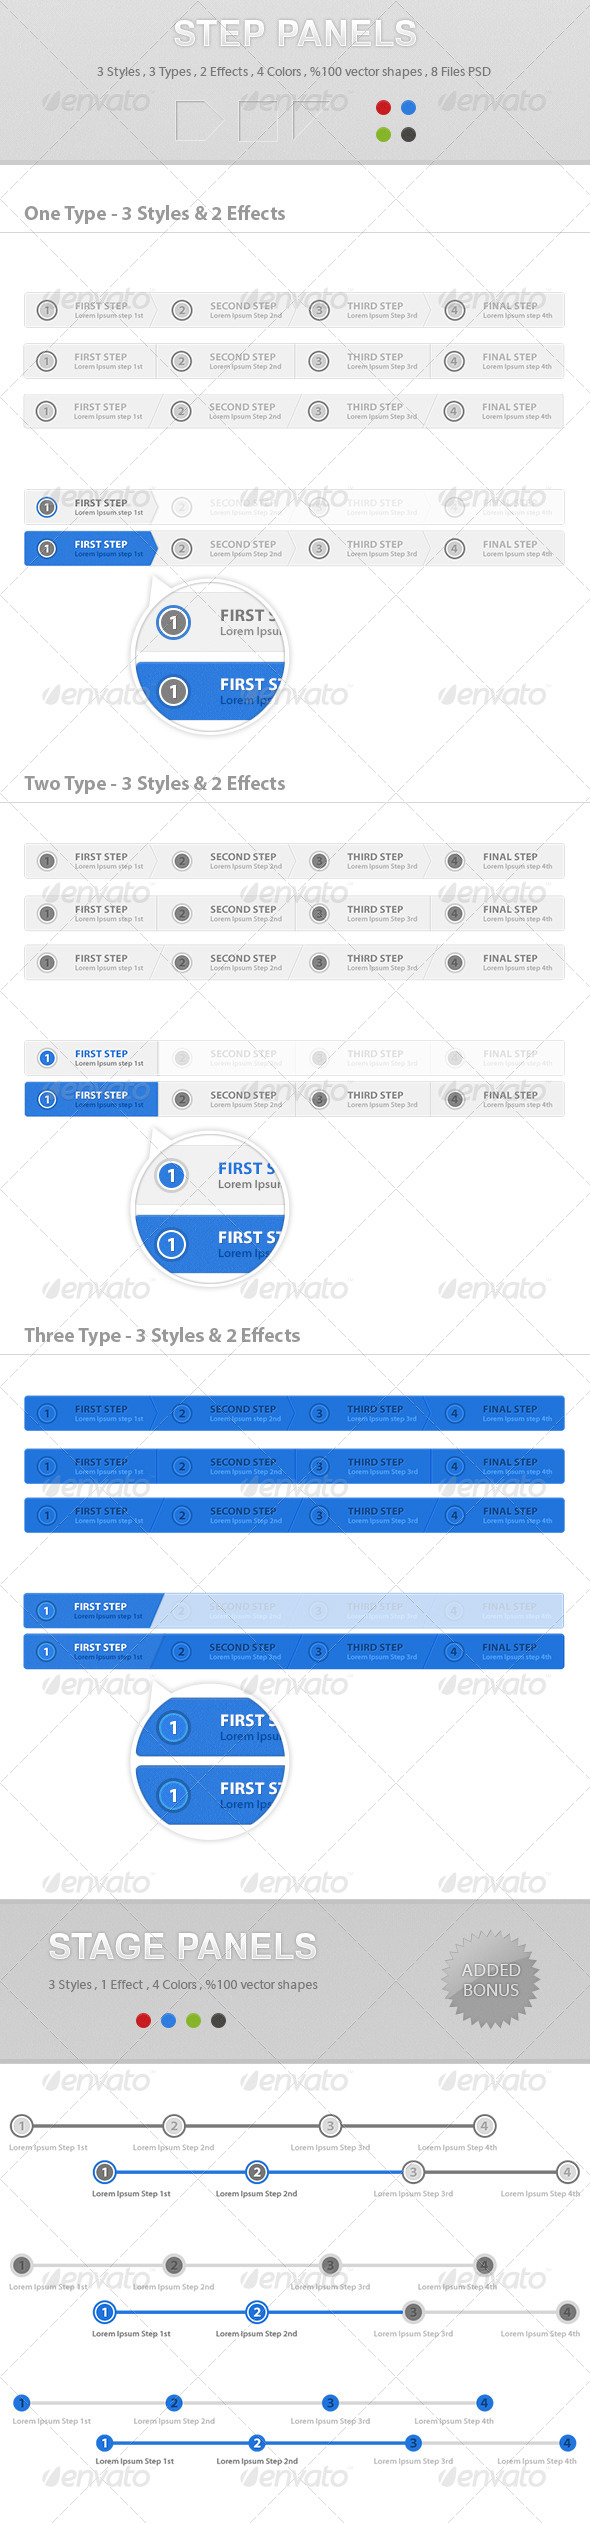 GraphicRiver Step & Stage Process Panels 6386171